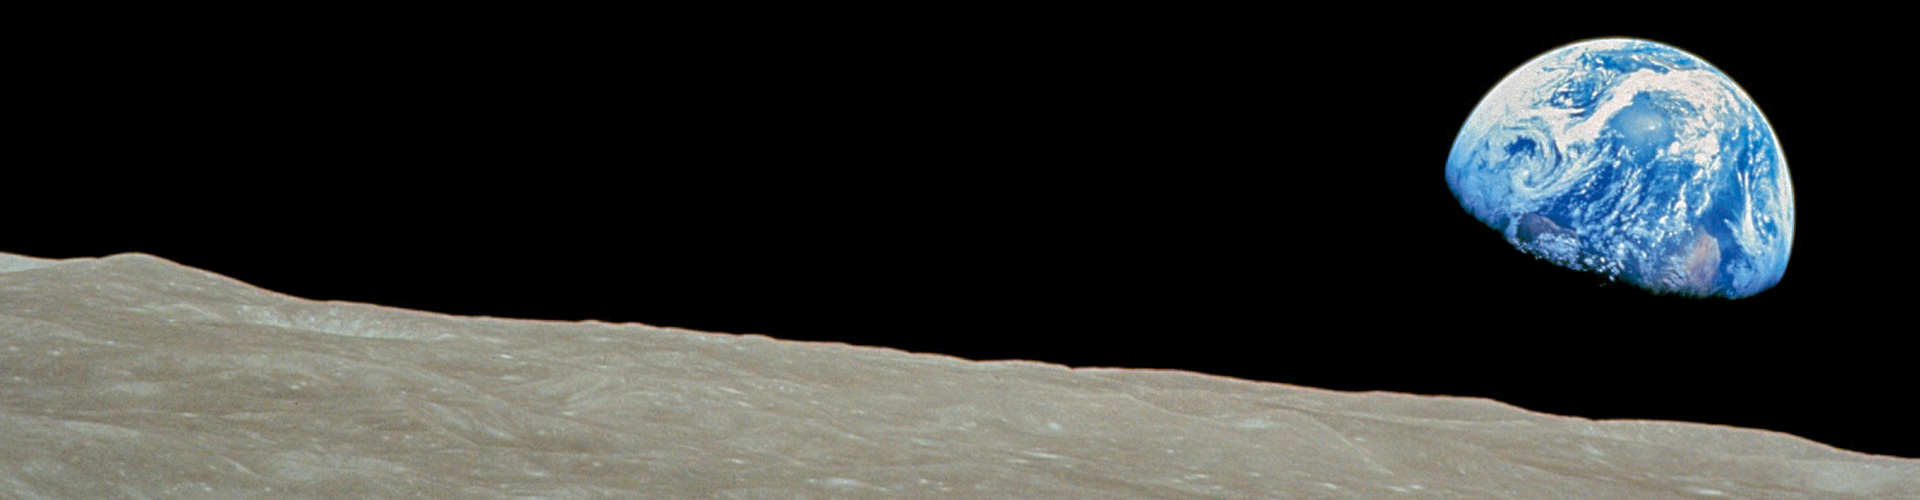 Kopp-Kirsamer - KKW19_F01_NASA-Apollo8-Dec24-Earthrise ©NASA